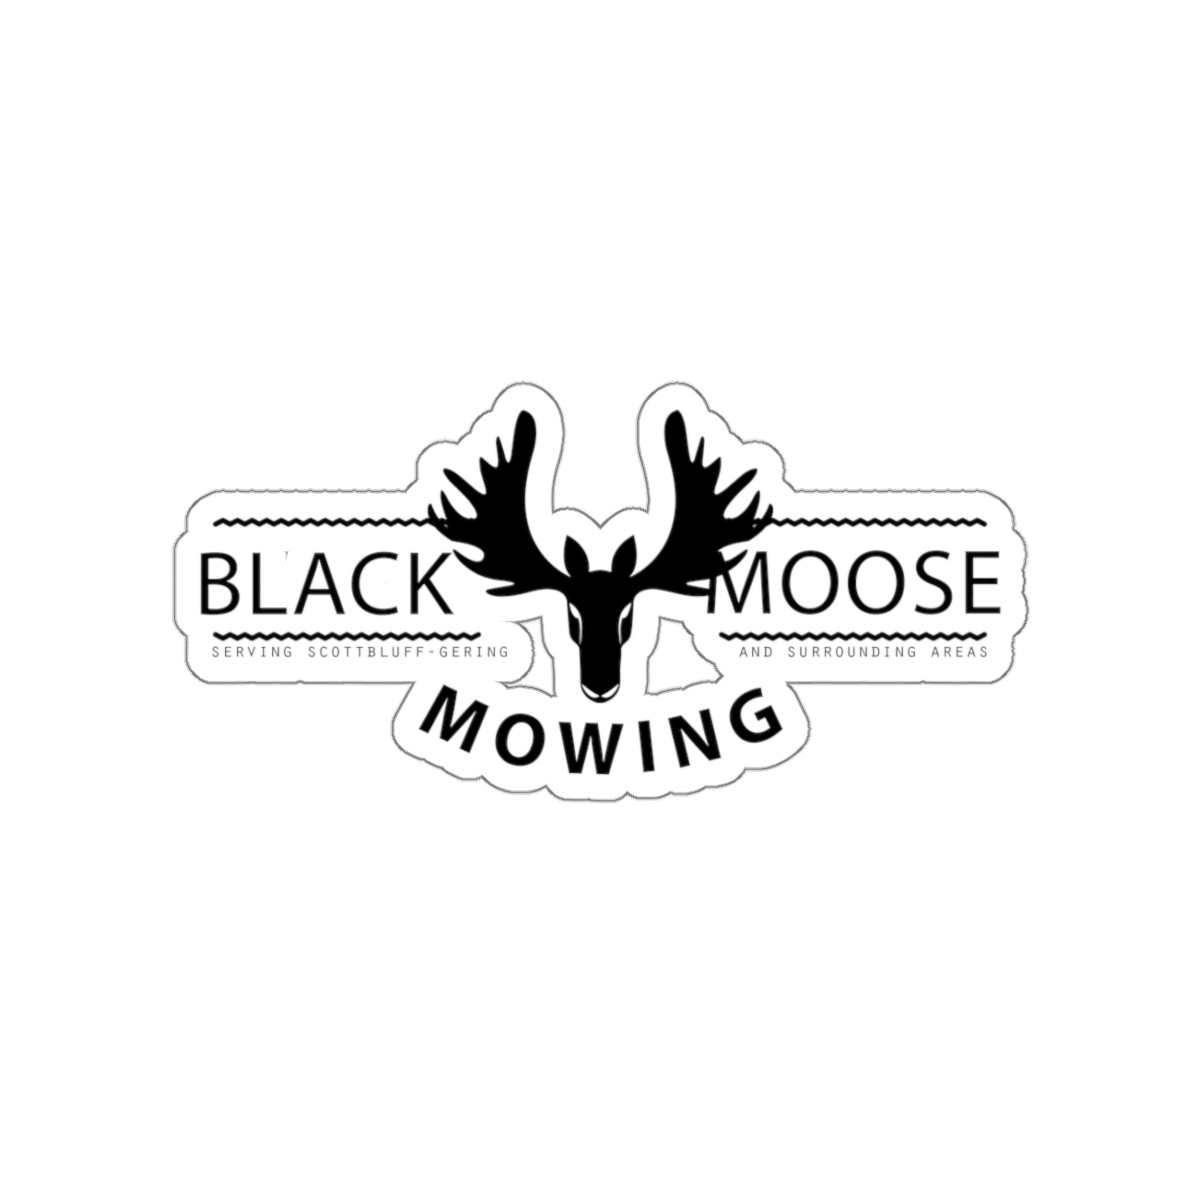 Black Moose Mowing Kiss Cut Stickers